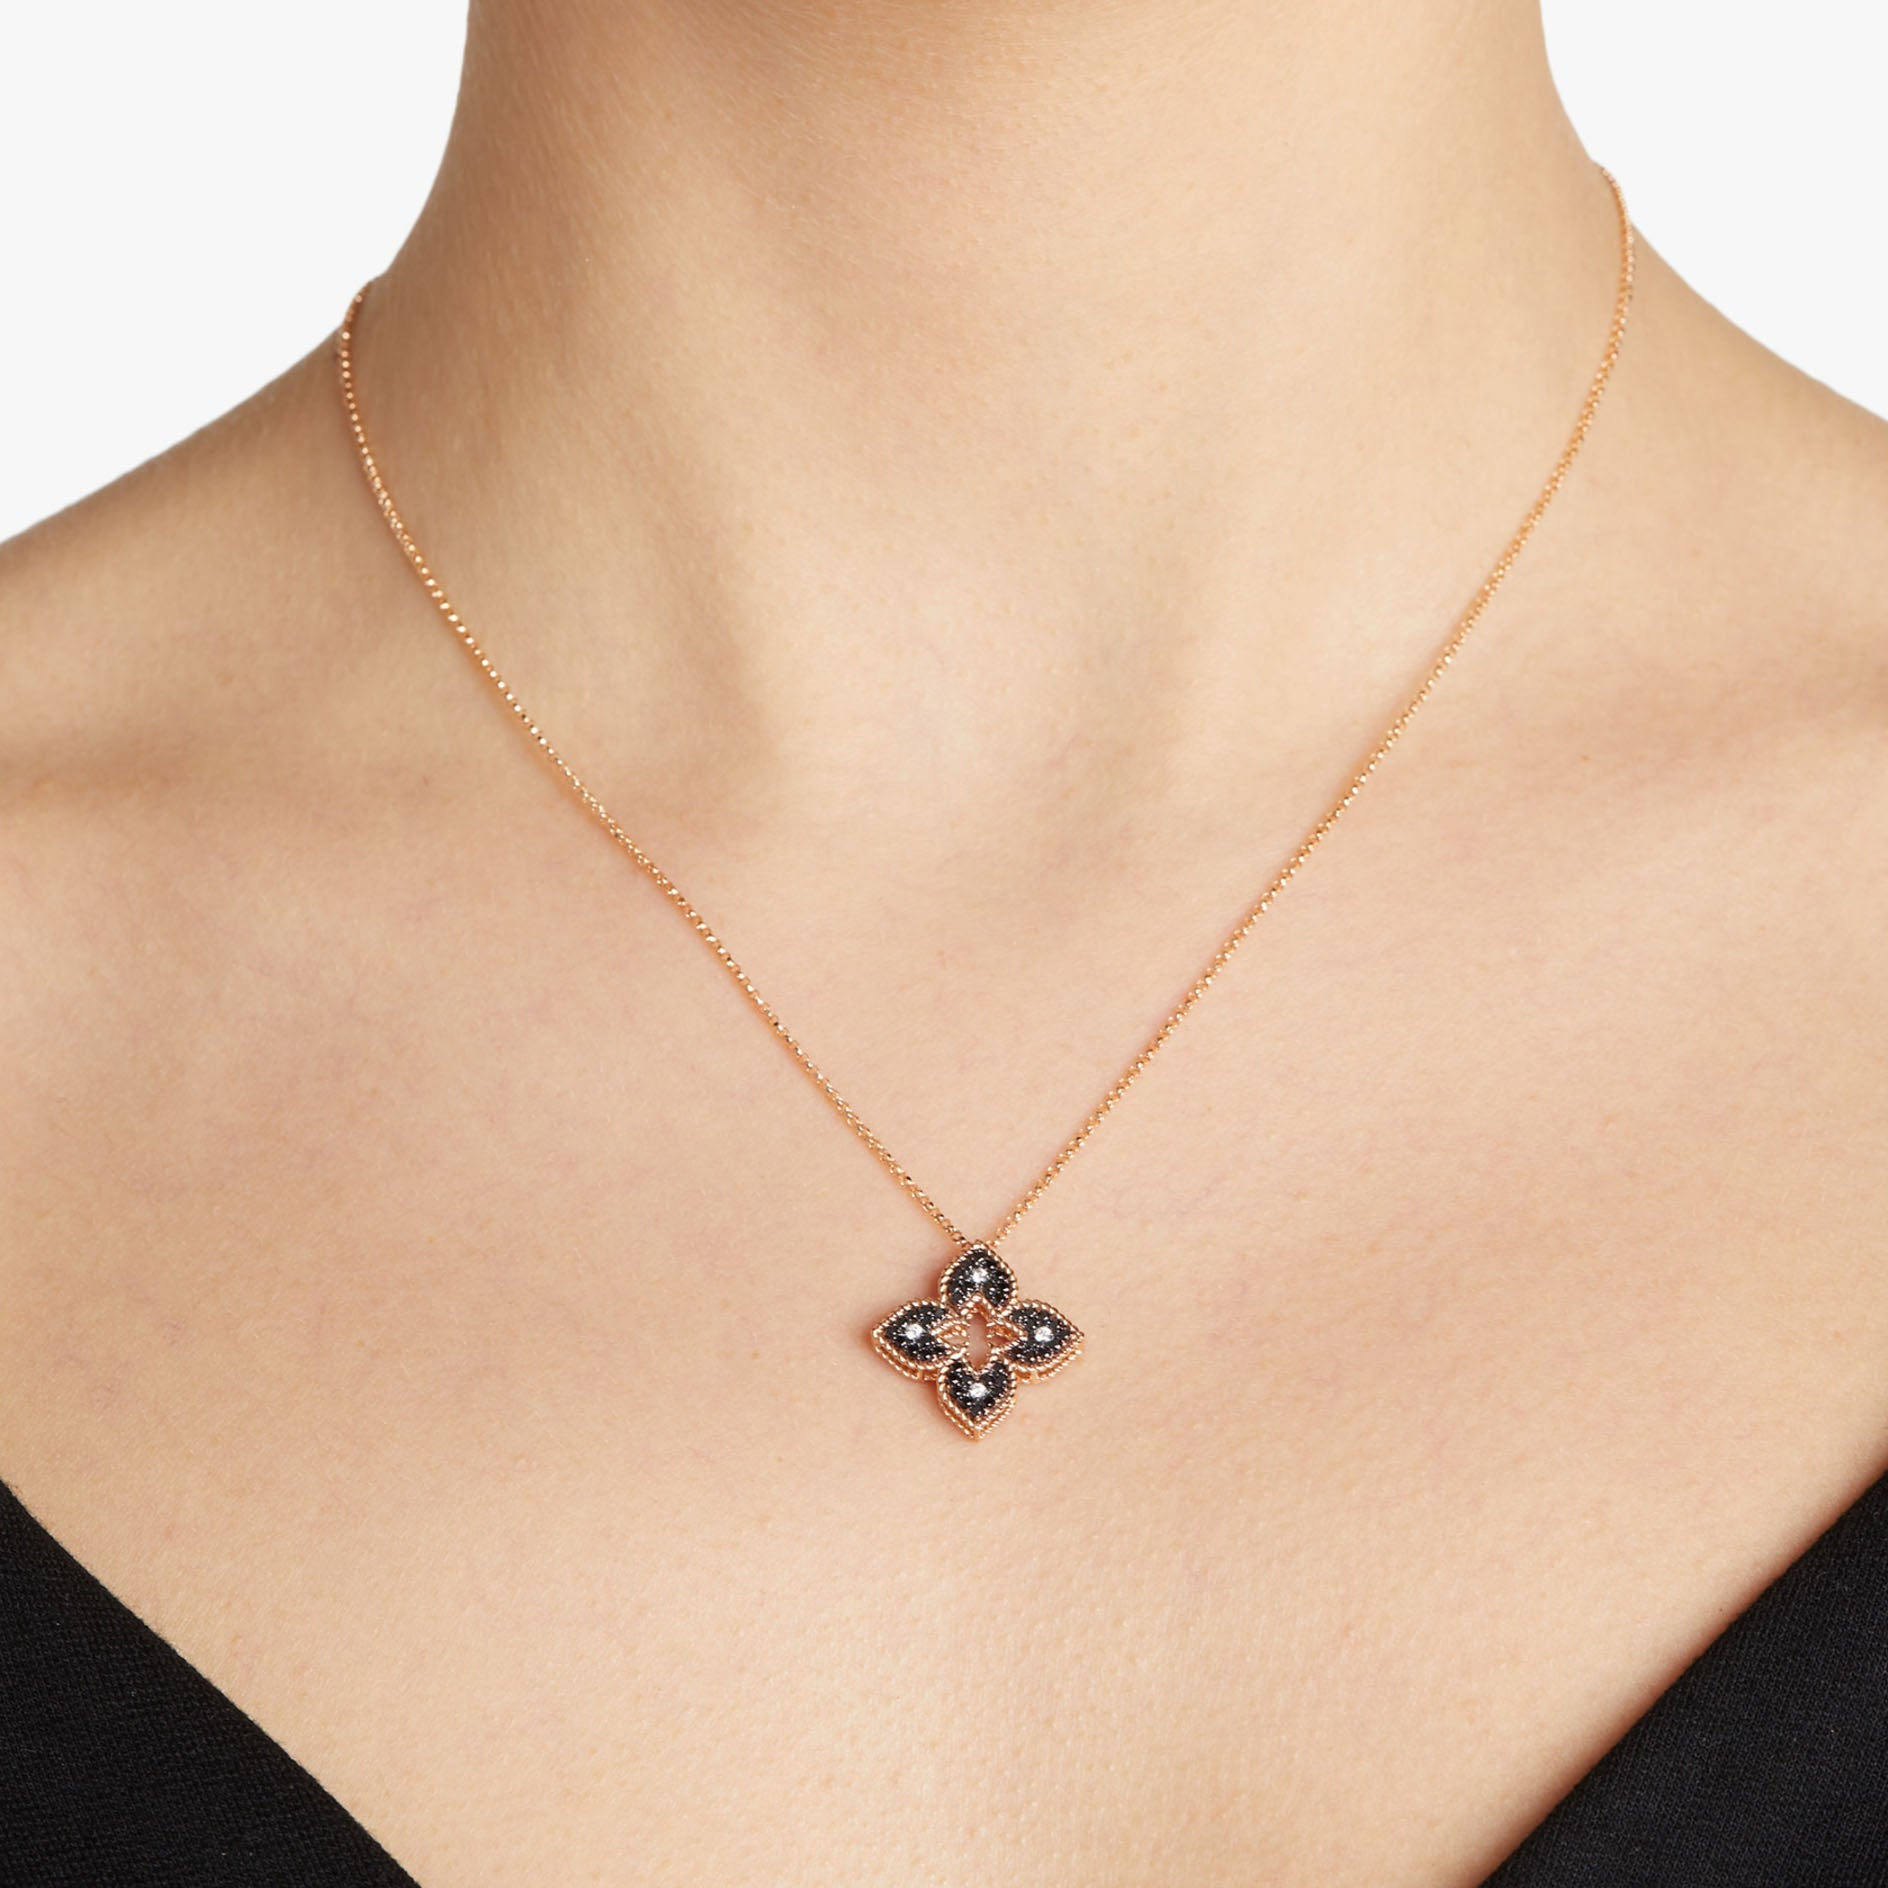 Princess Flower Station Black & White Diamond Pendant Necklace